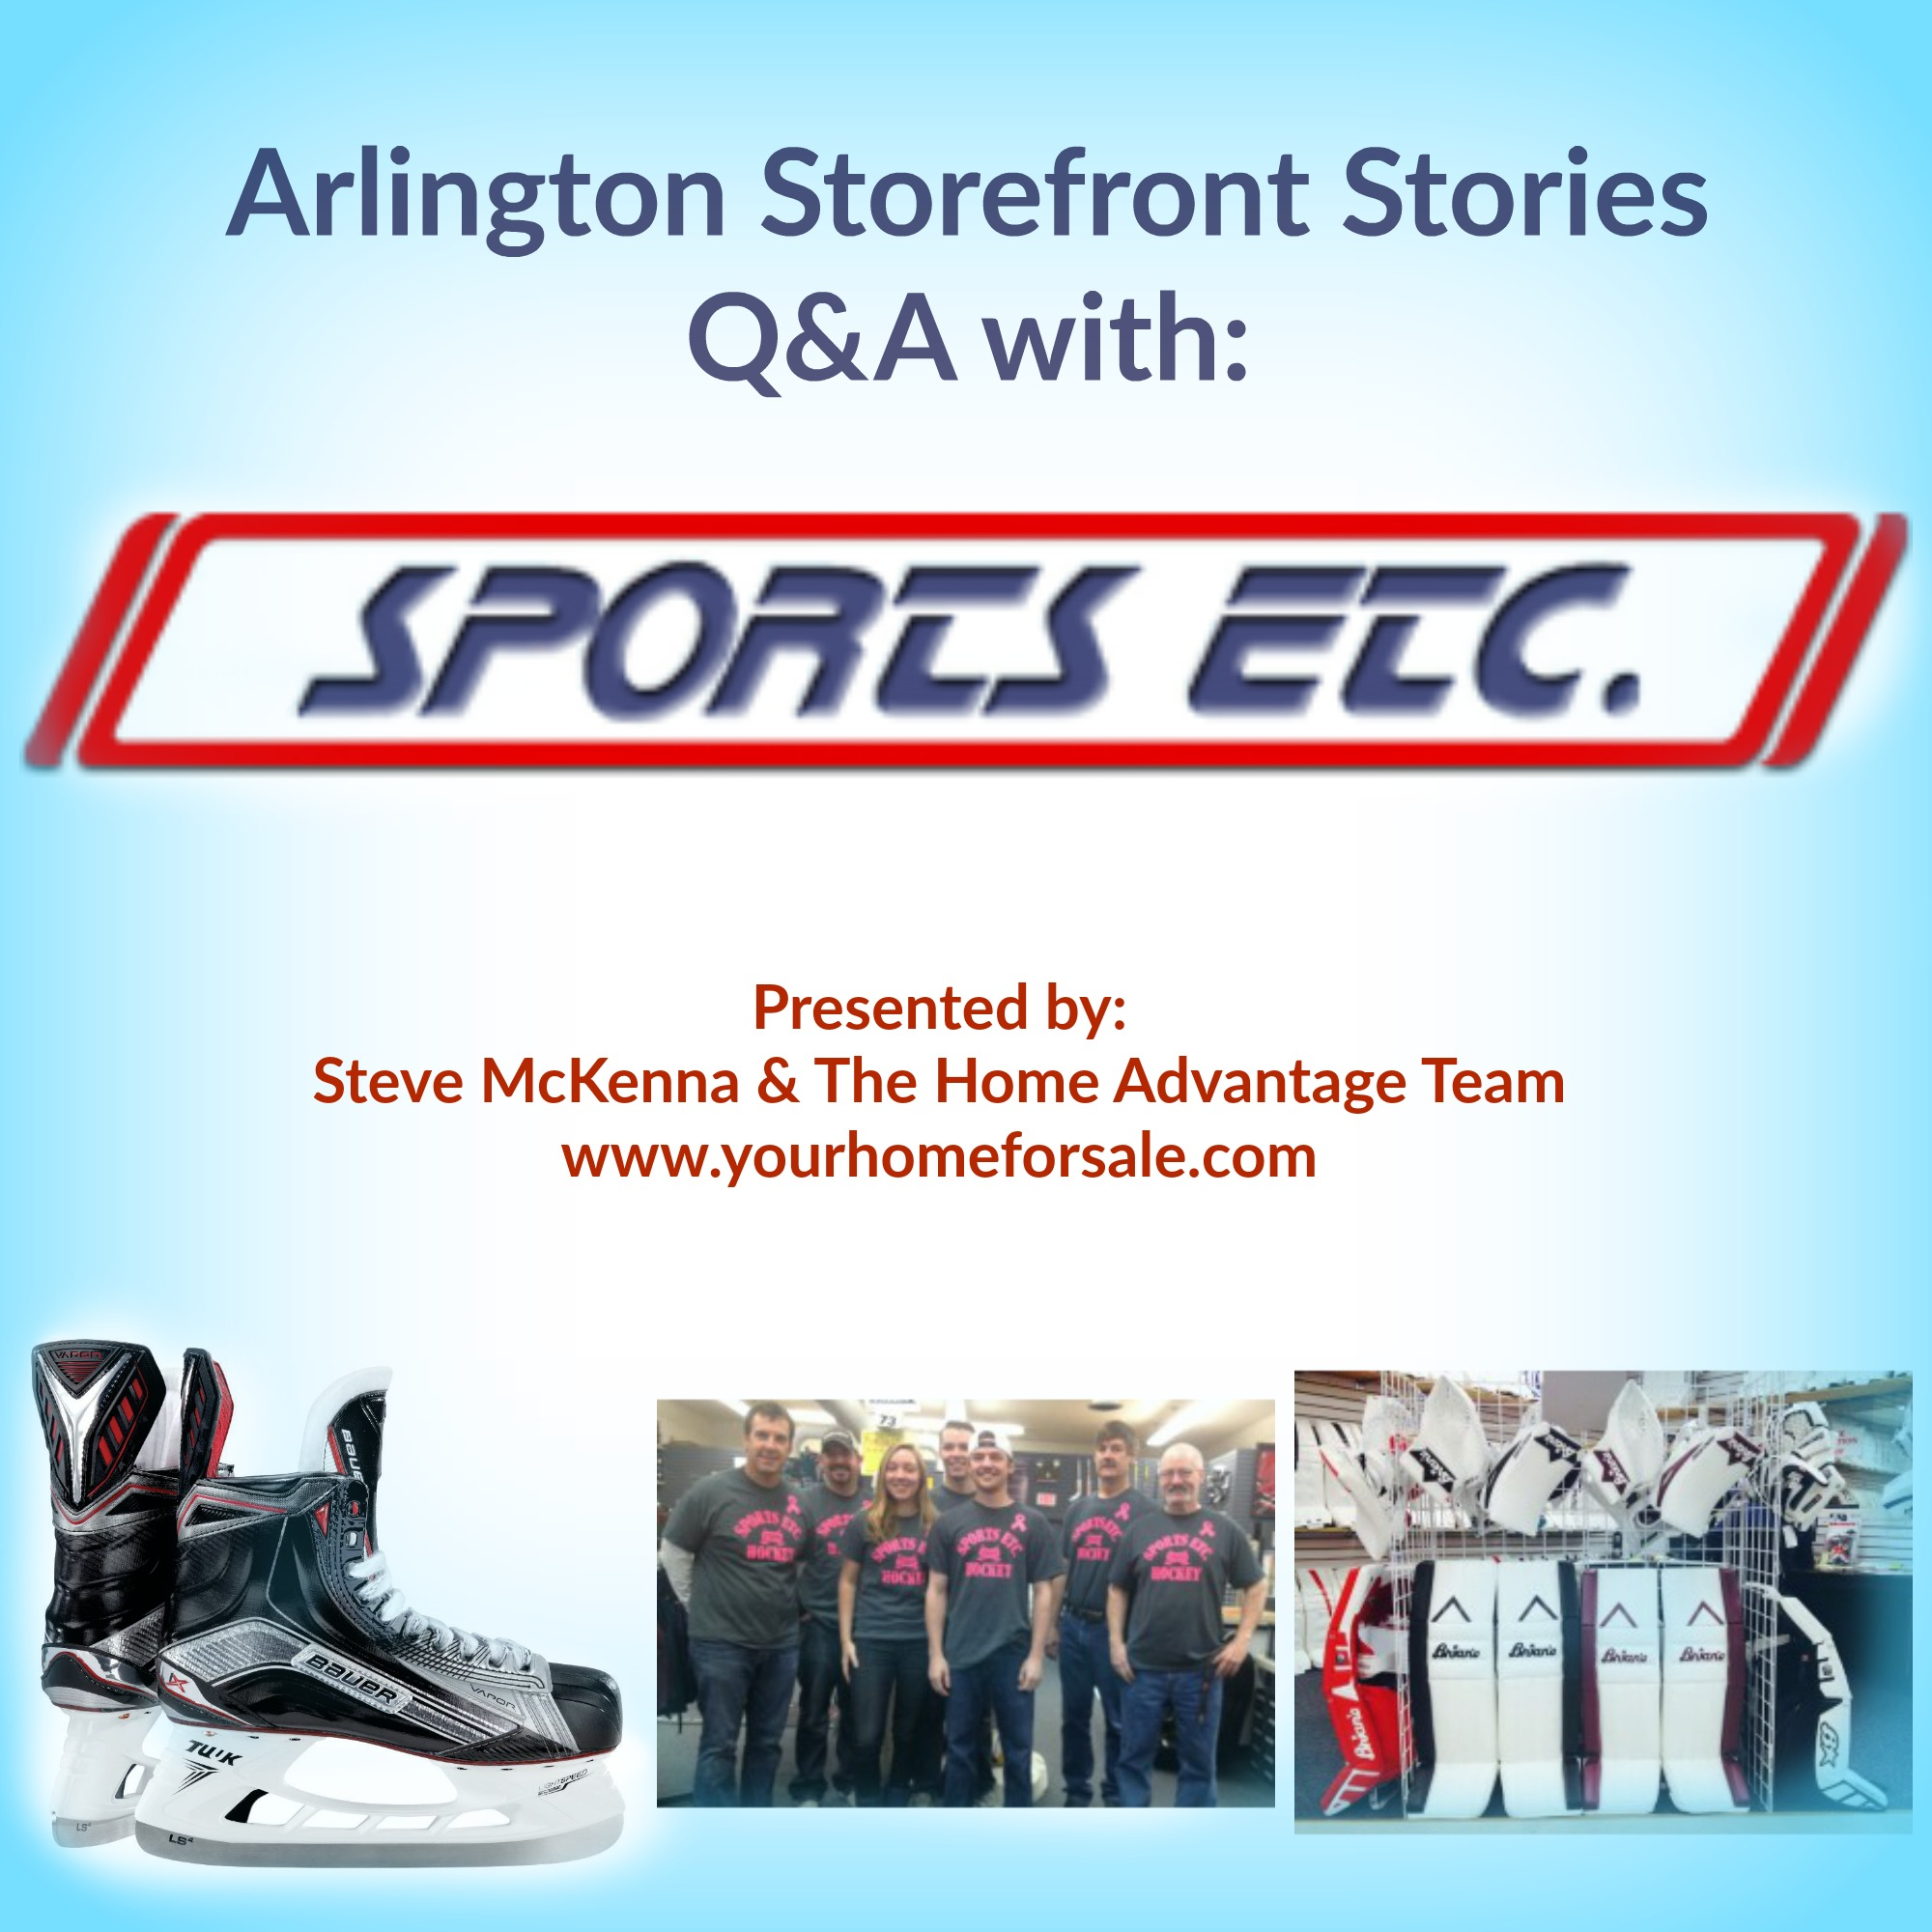 Q&A With Arlington's Sports Etc.